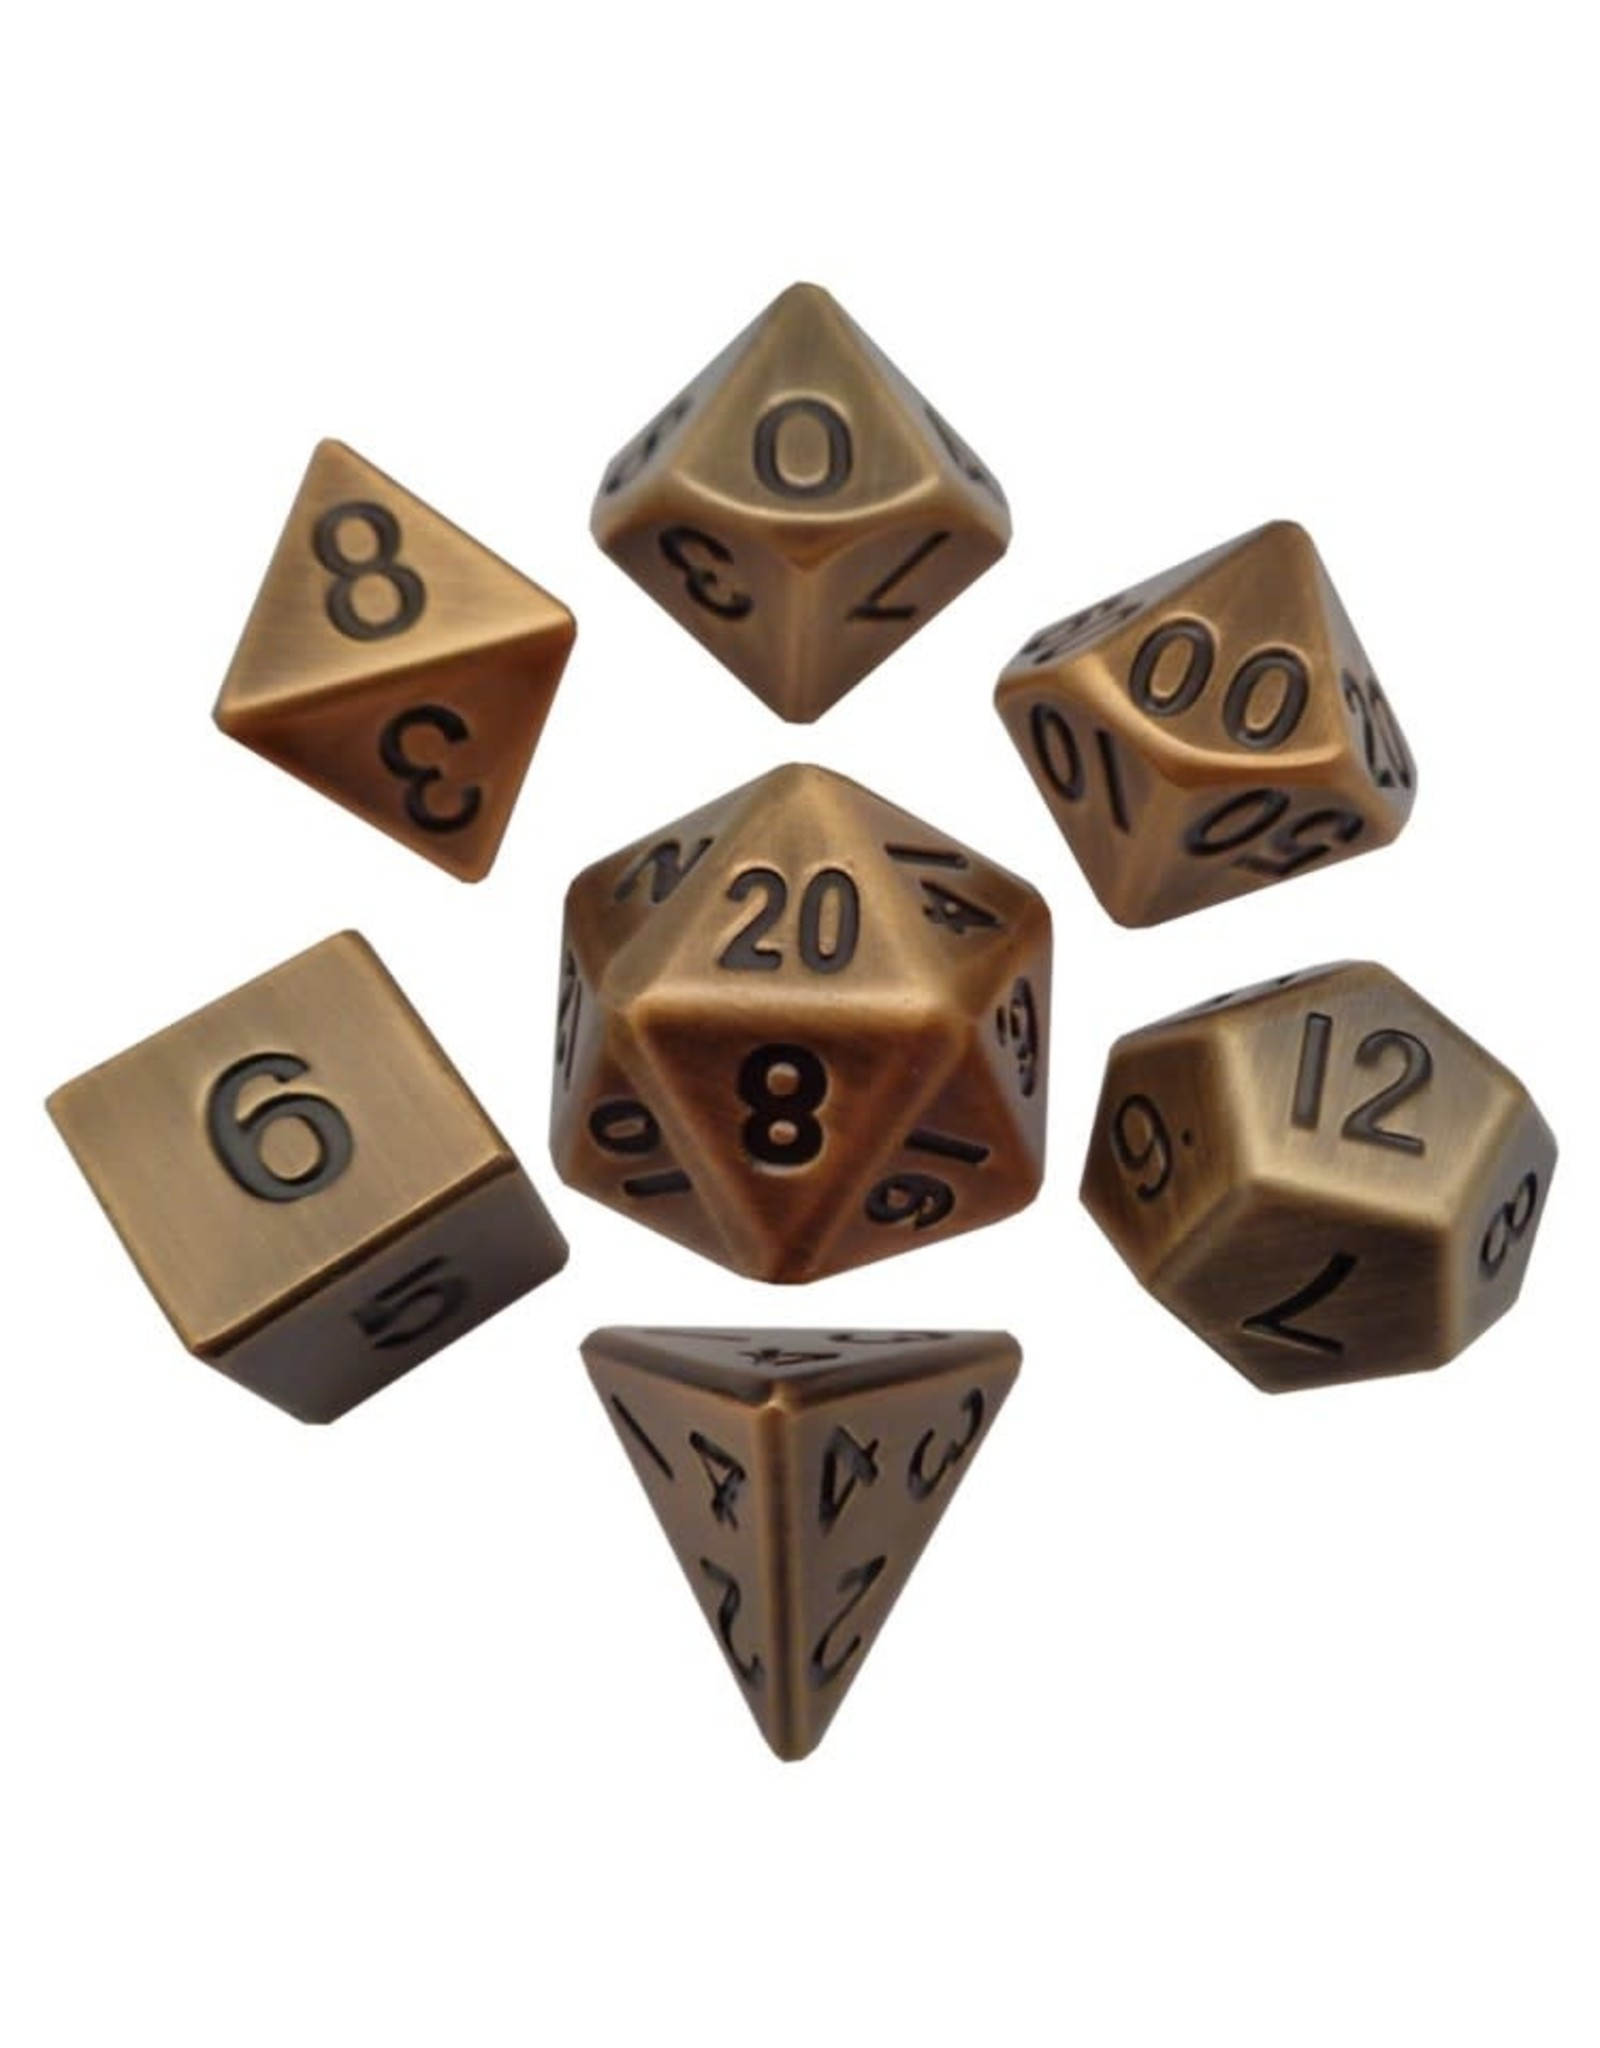 Metallic Dice Games 7-set: Antique GD Metal